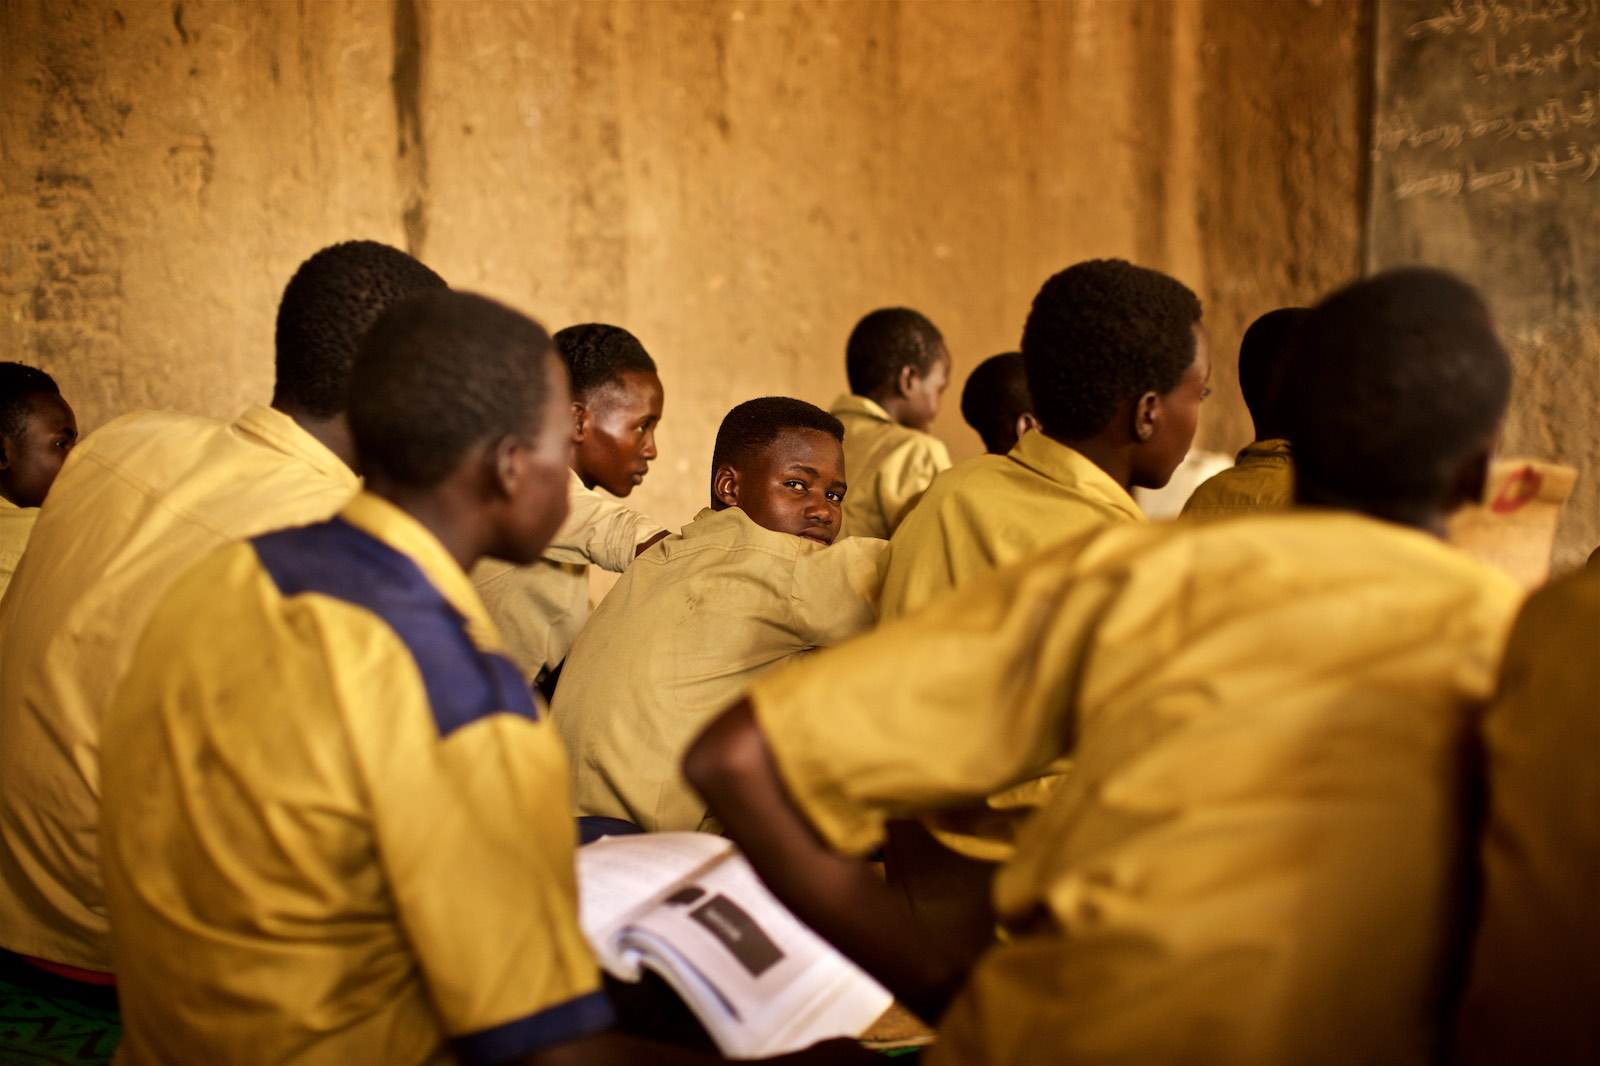 denis-bosnic-chad-school-jrs-jesuit-refugee-service-students-education-mercy-in-motion-10.jpg